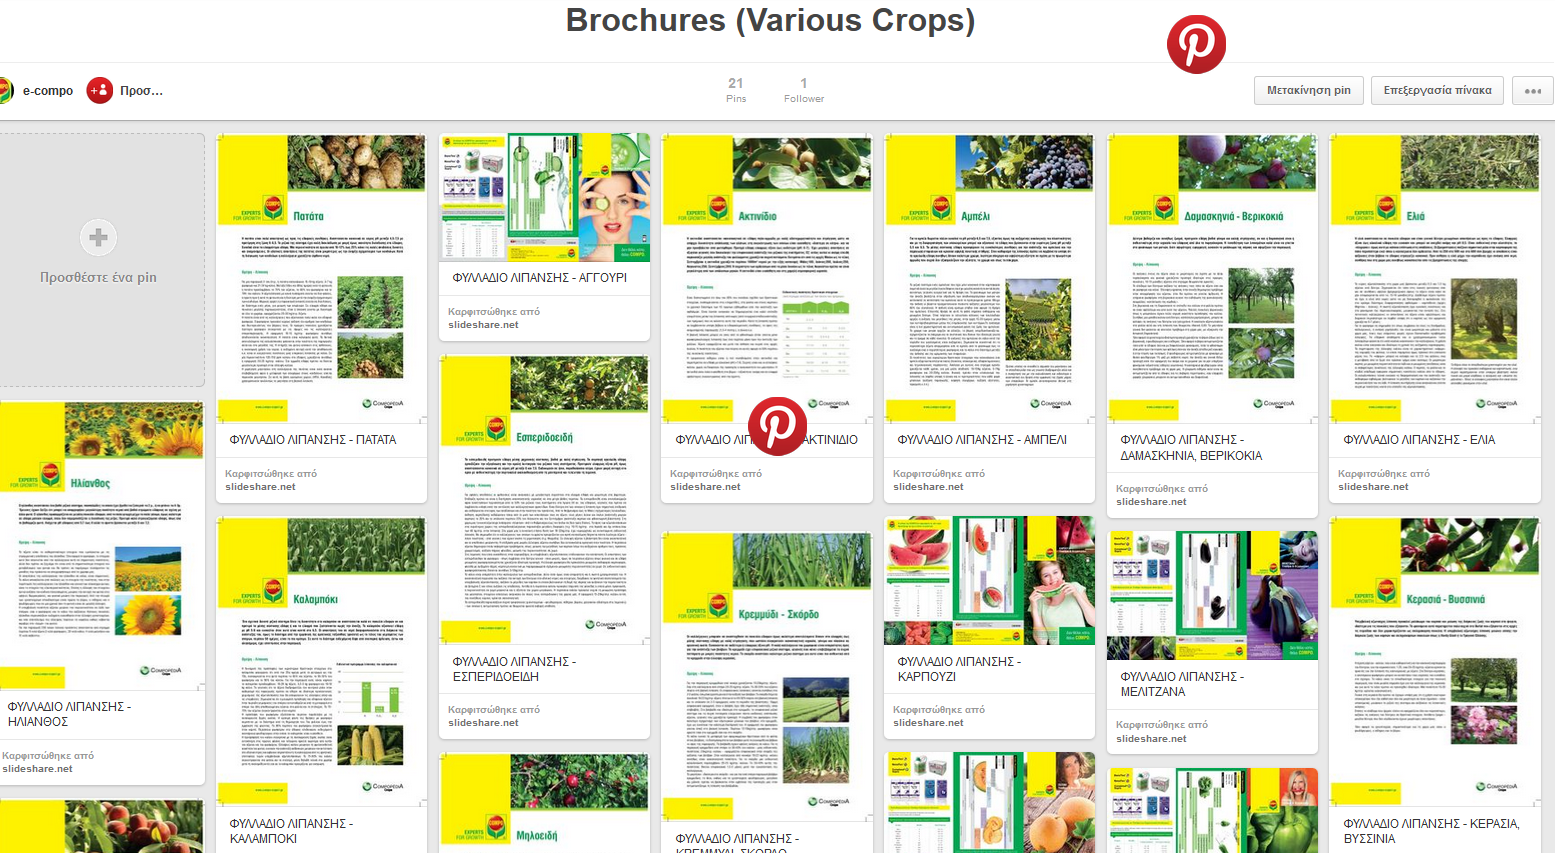 https://www.pinterest.com/eCompogr/brochures-various-crops/